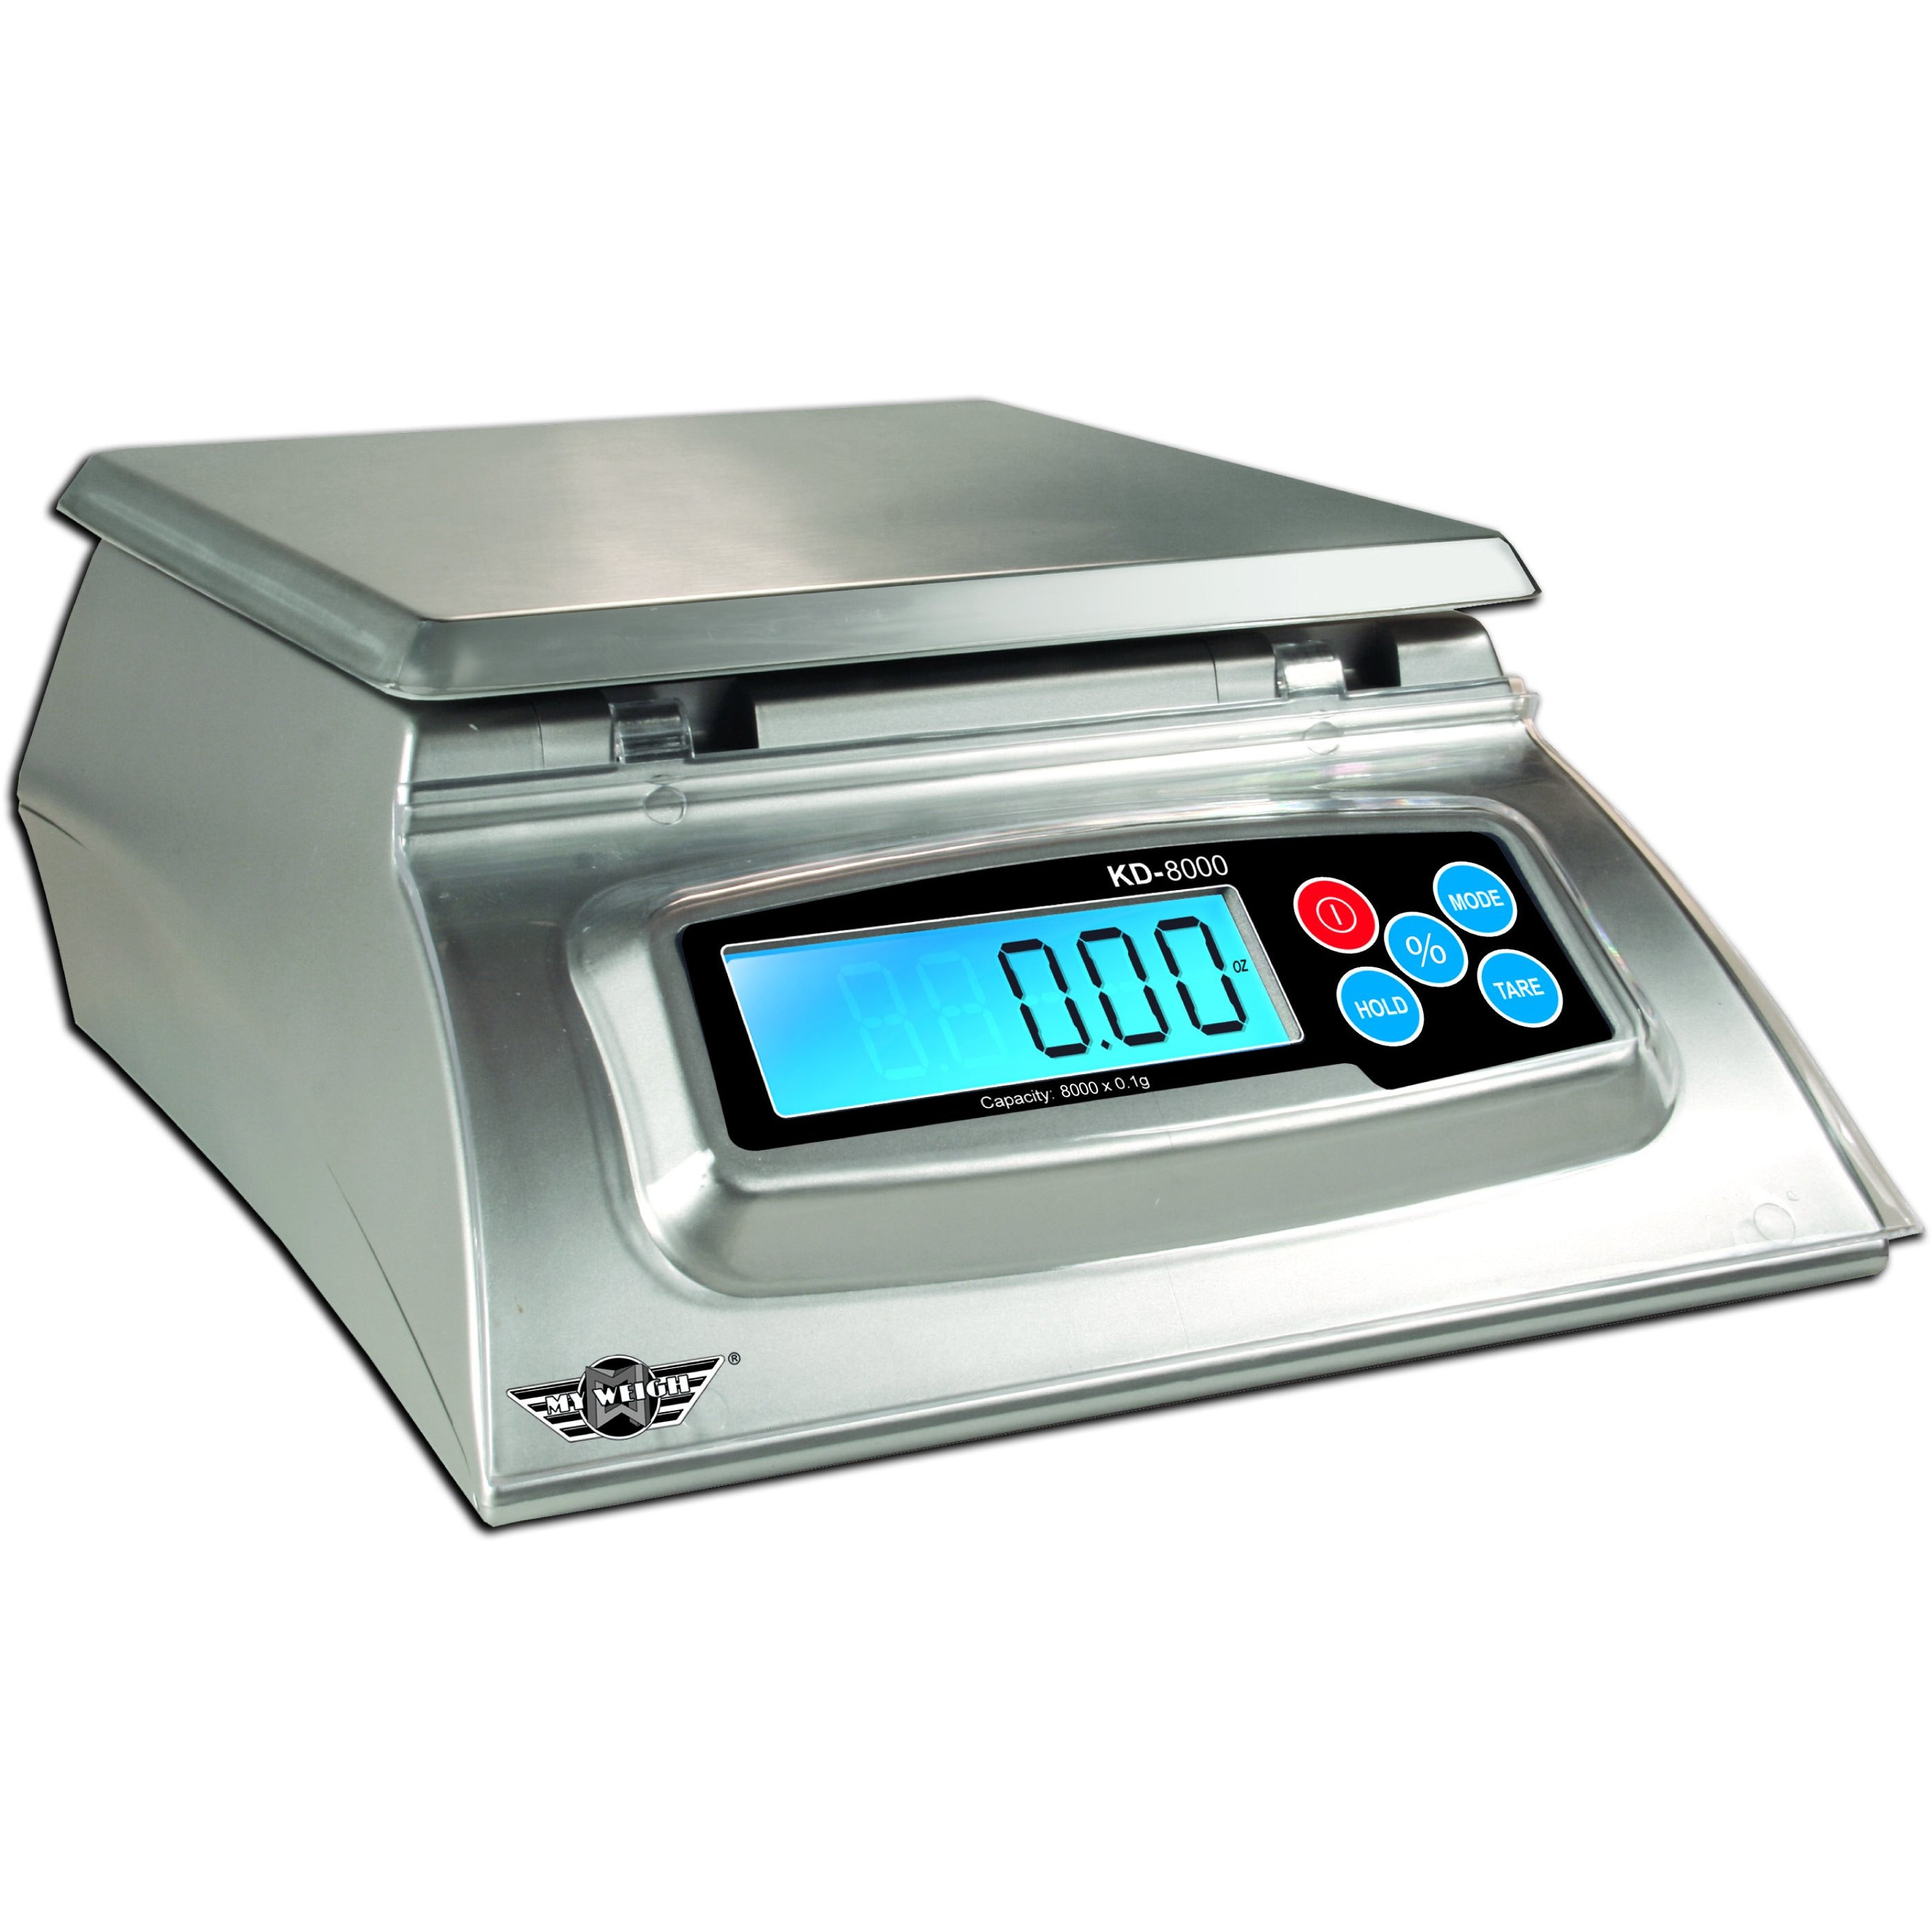 KD-8000 My Weigh Kitchen Scale 8000g x 1g